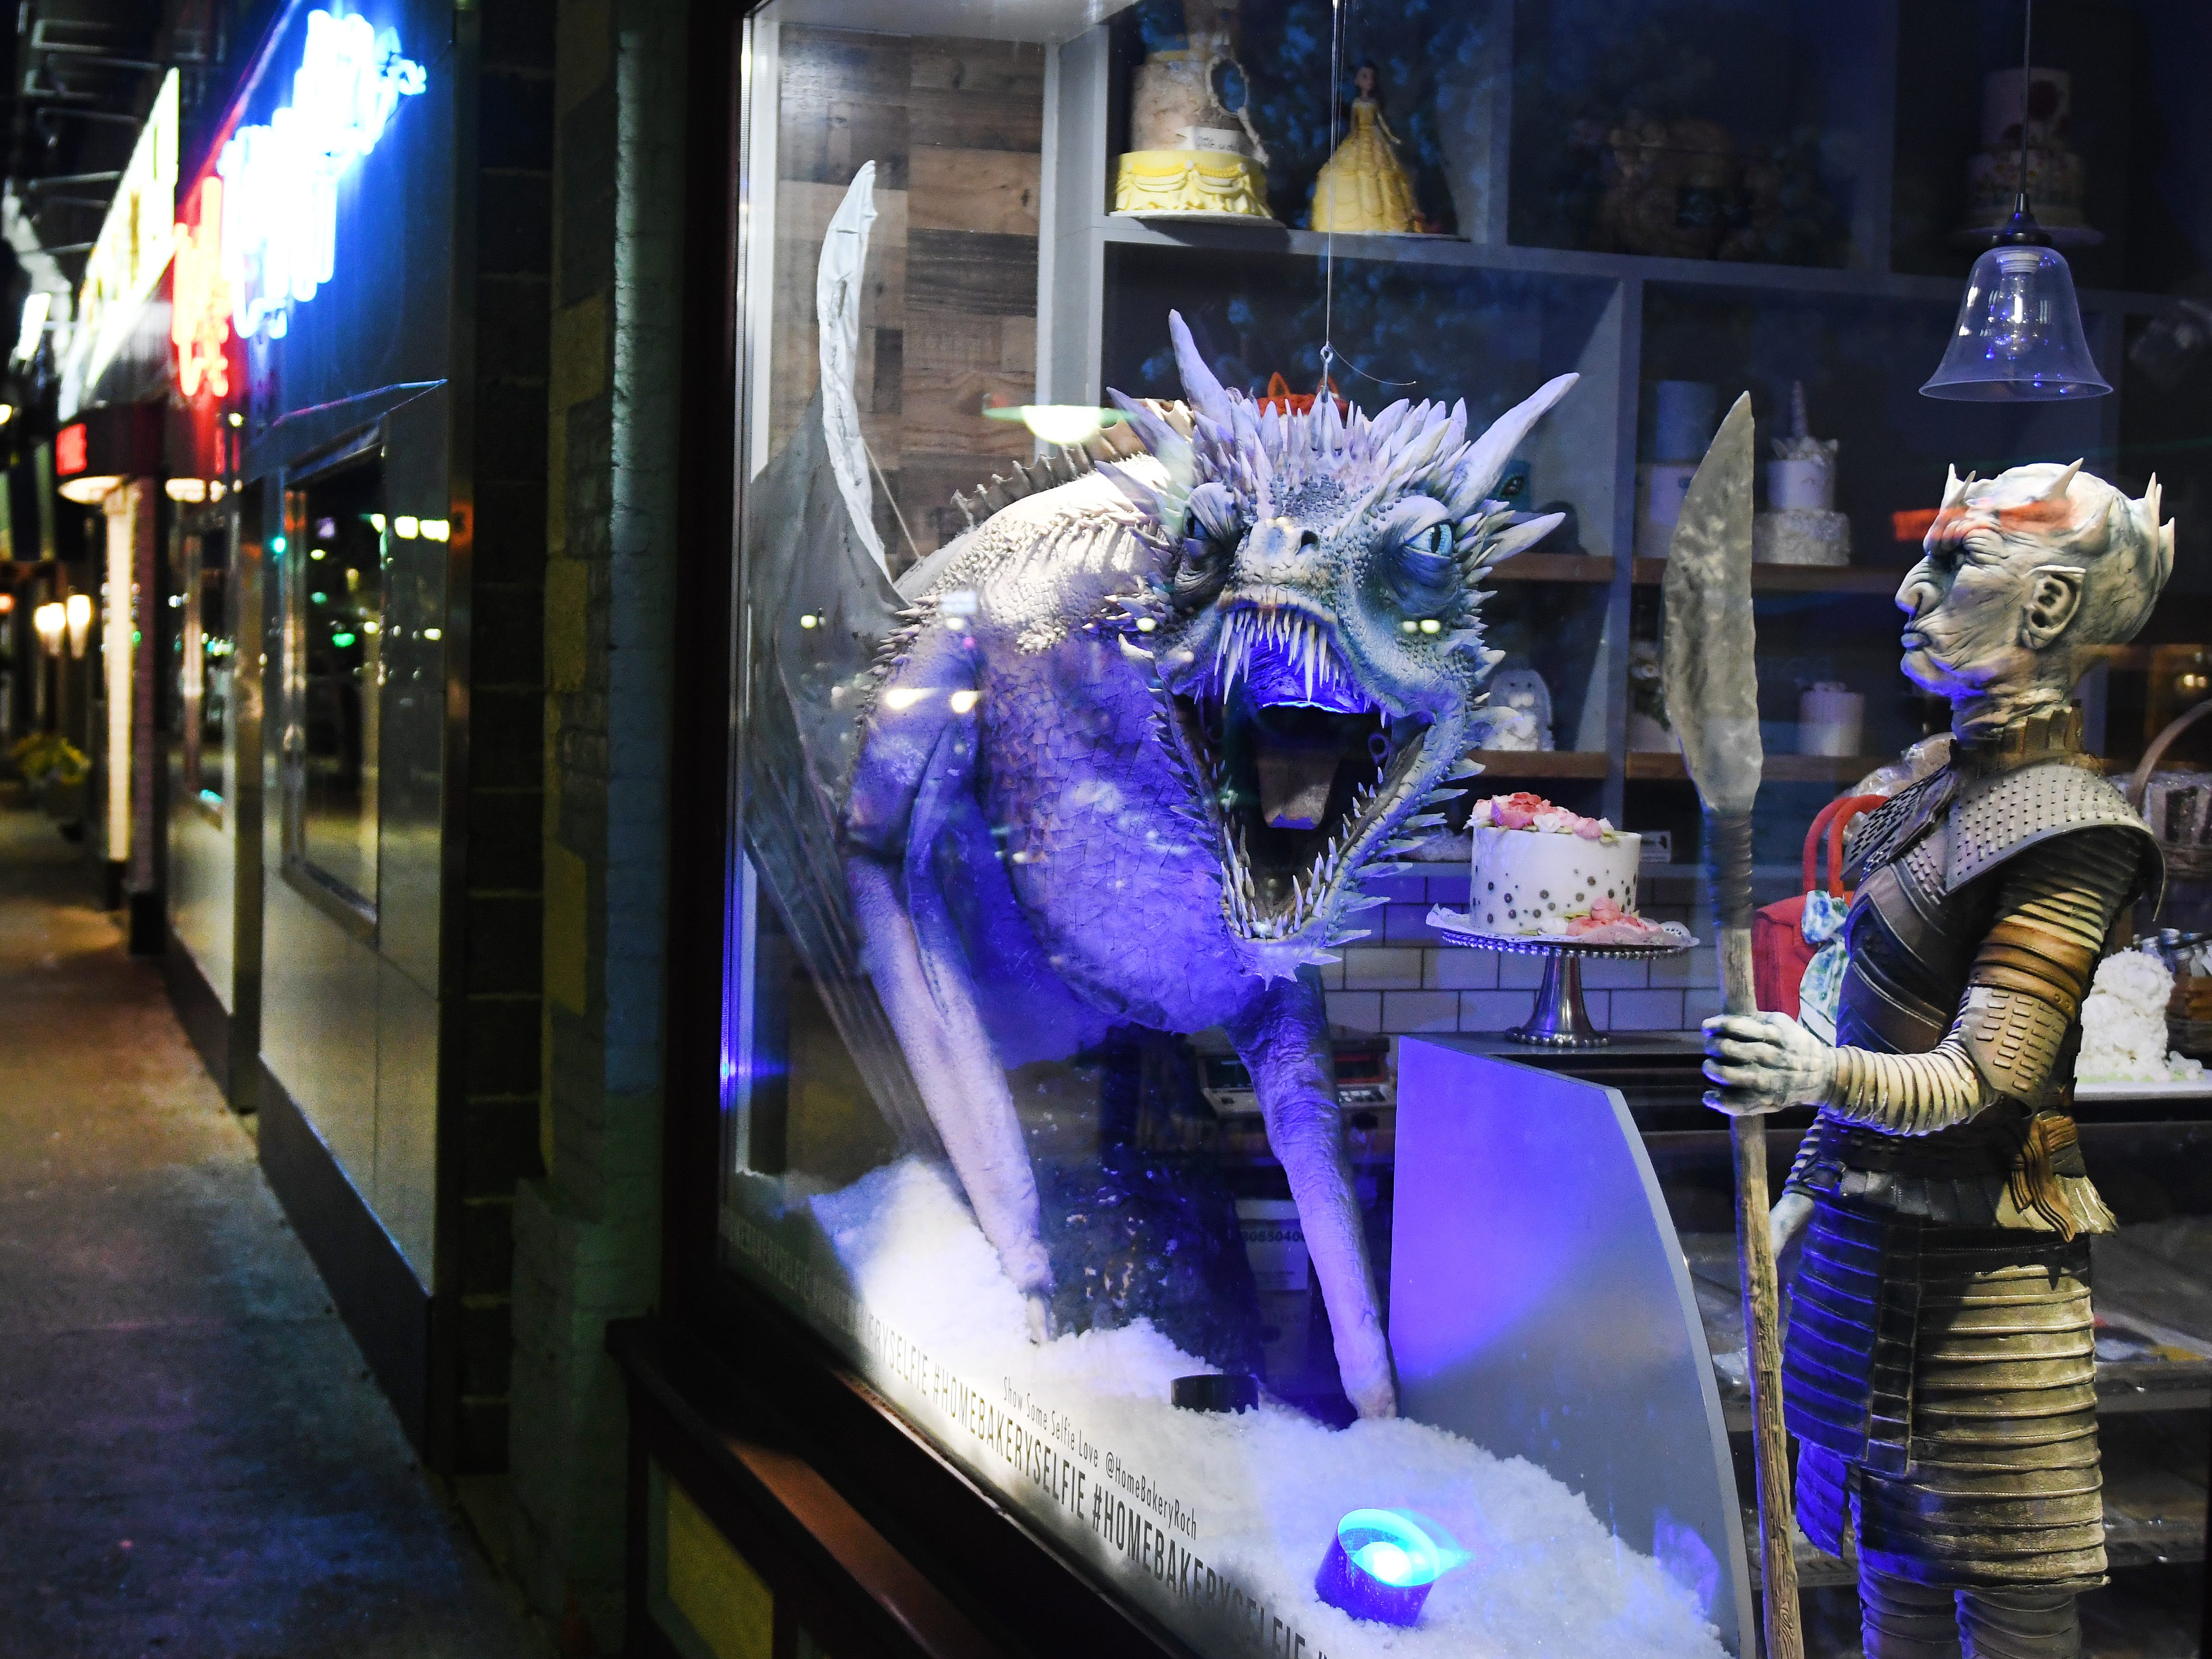 The 'Game of Thrones' window display is   expected to remain at The Home Bakery until June.